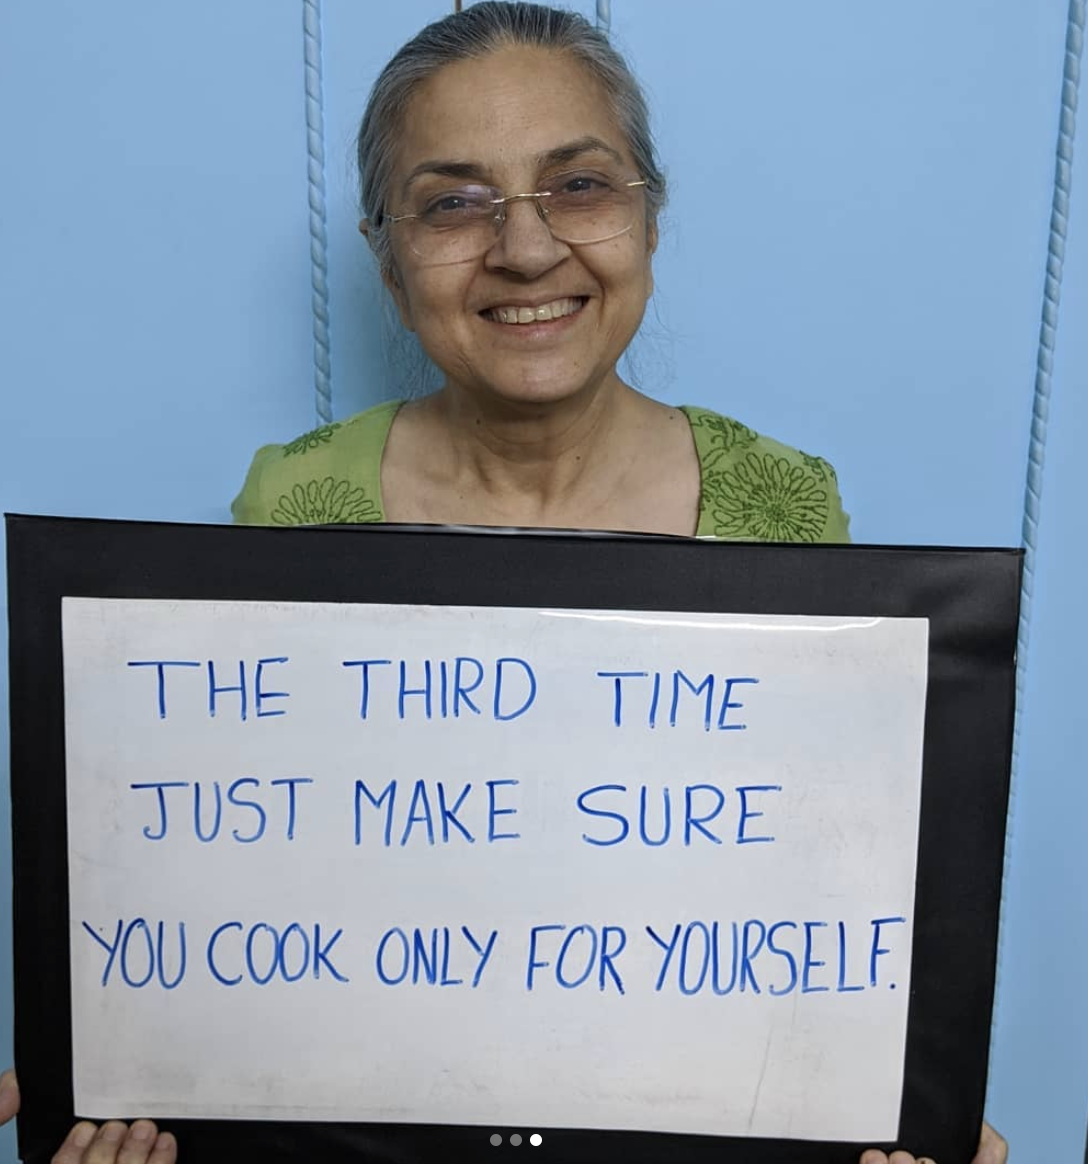 Sign saying the third time only cook for yourself.